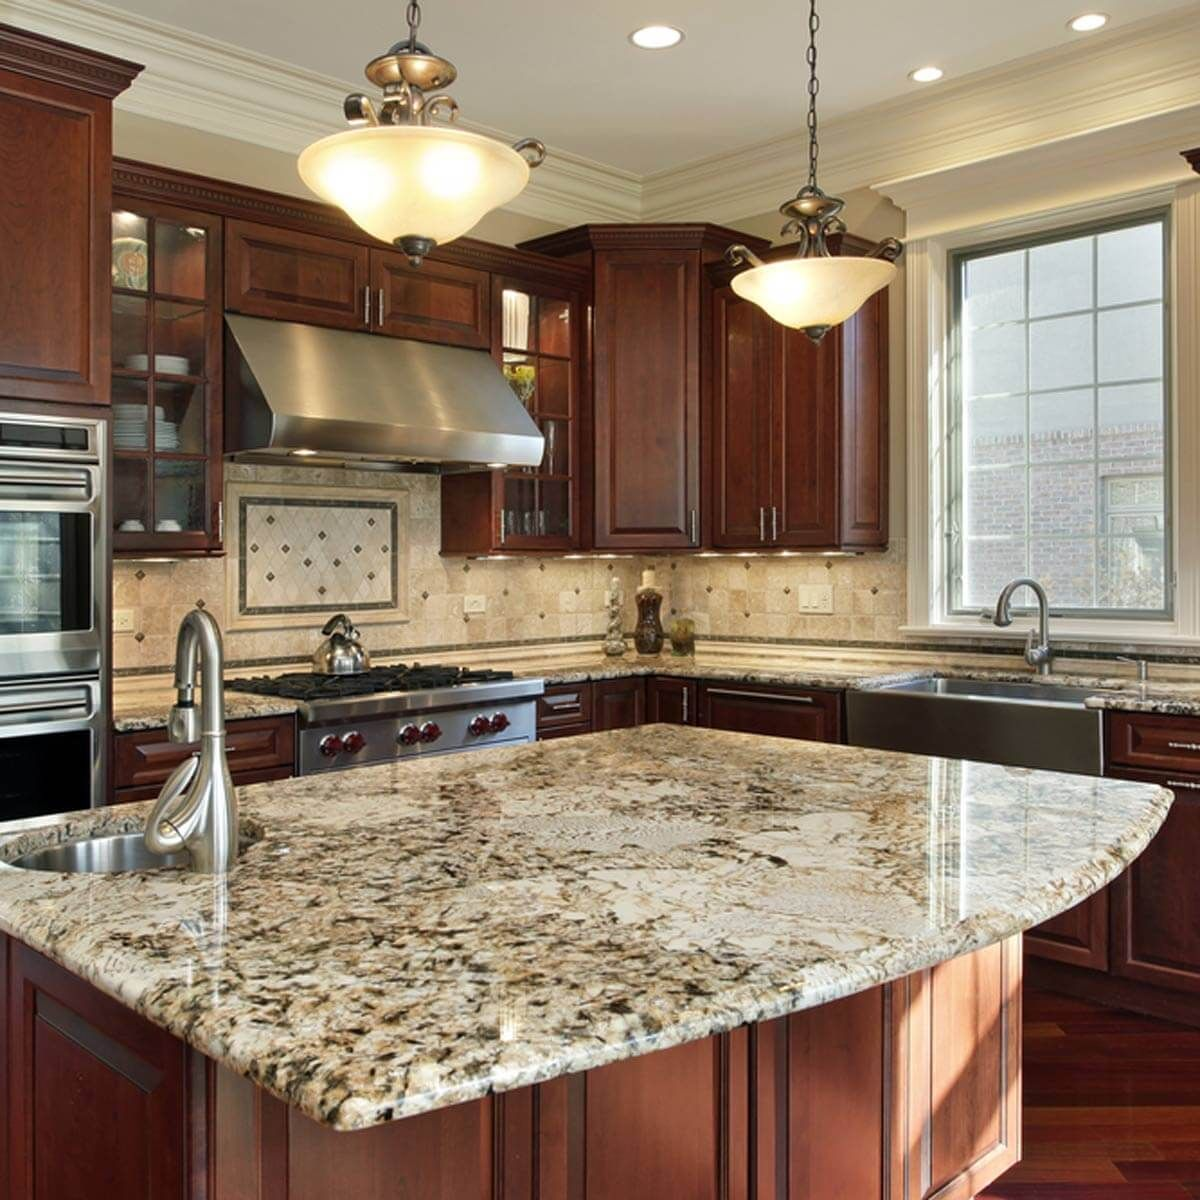 20 Out Of Style Items For Your Home Granite Kitchen Countertops Luxury Kitchen Design Luxury Kitchens Kitchen Renovation